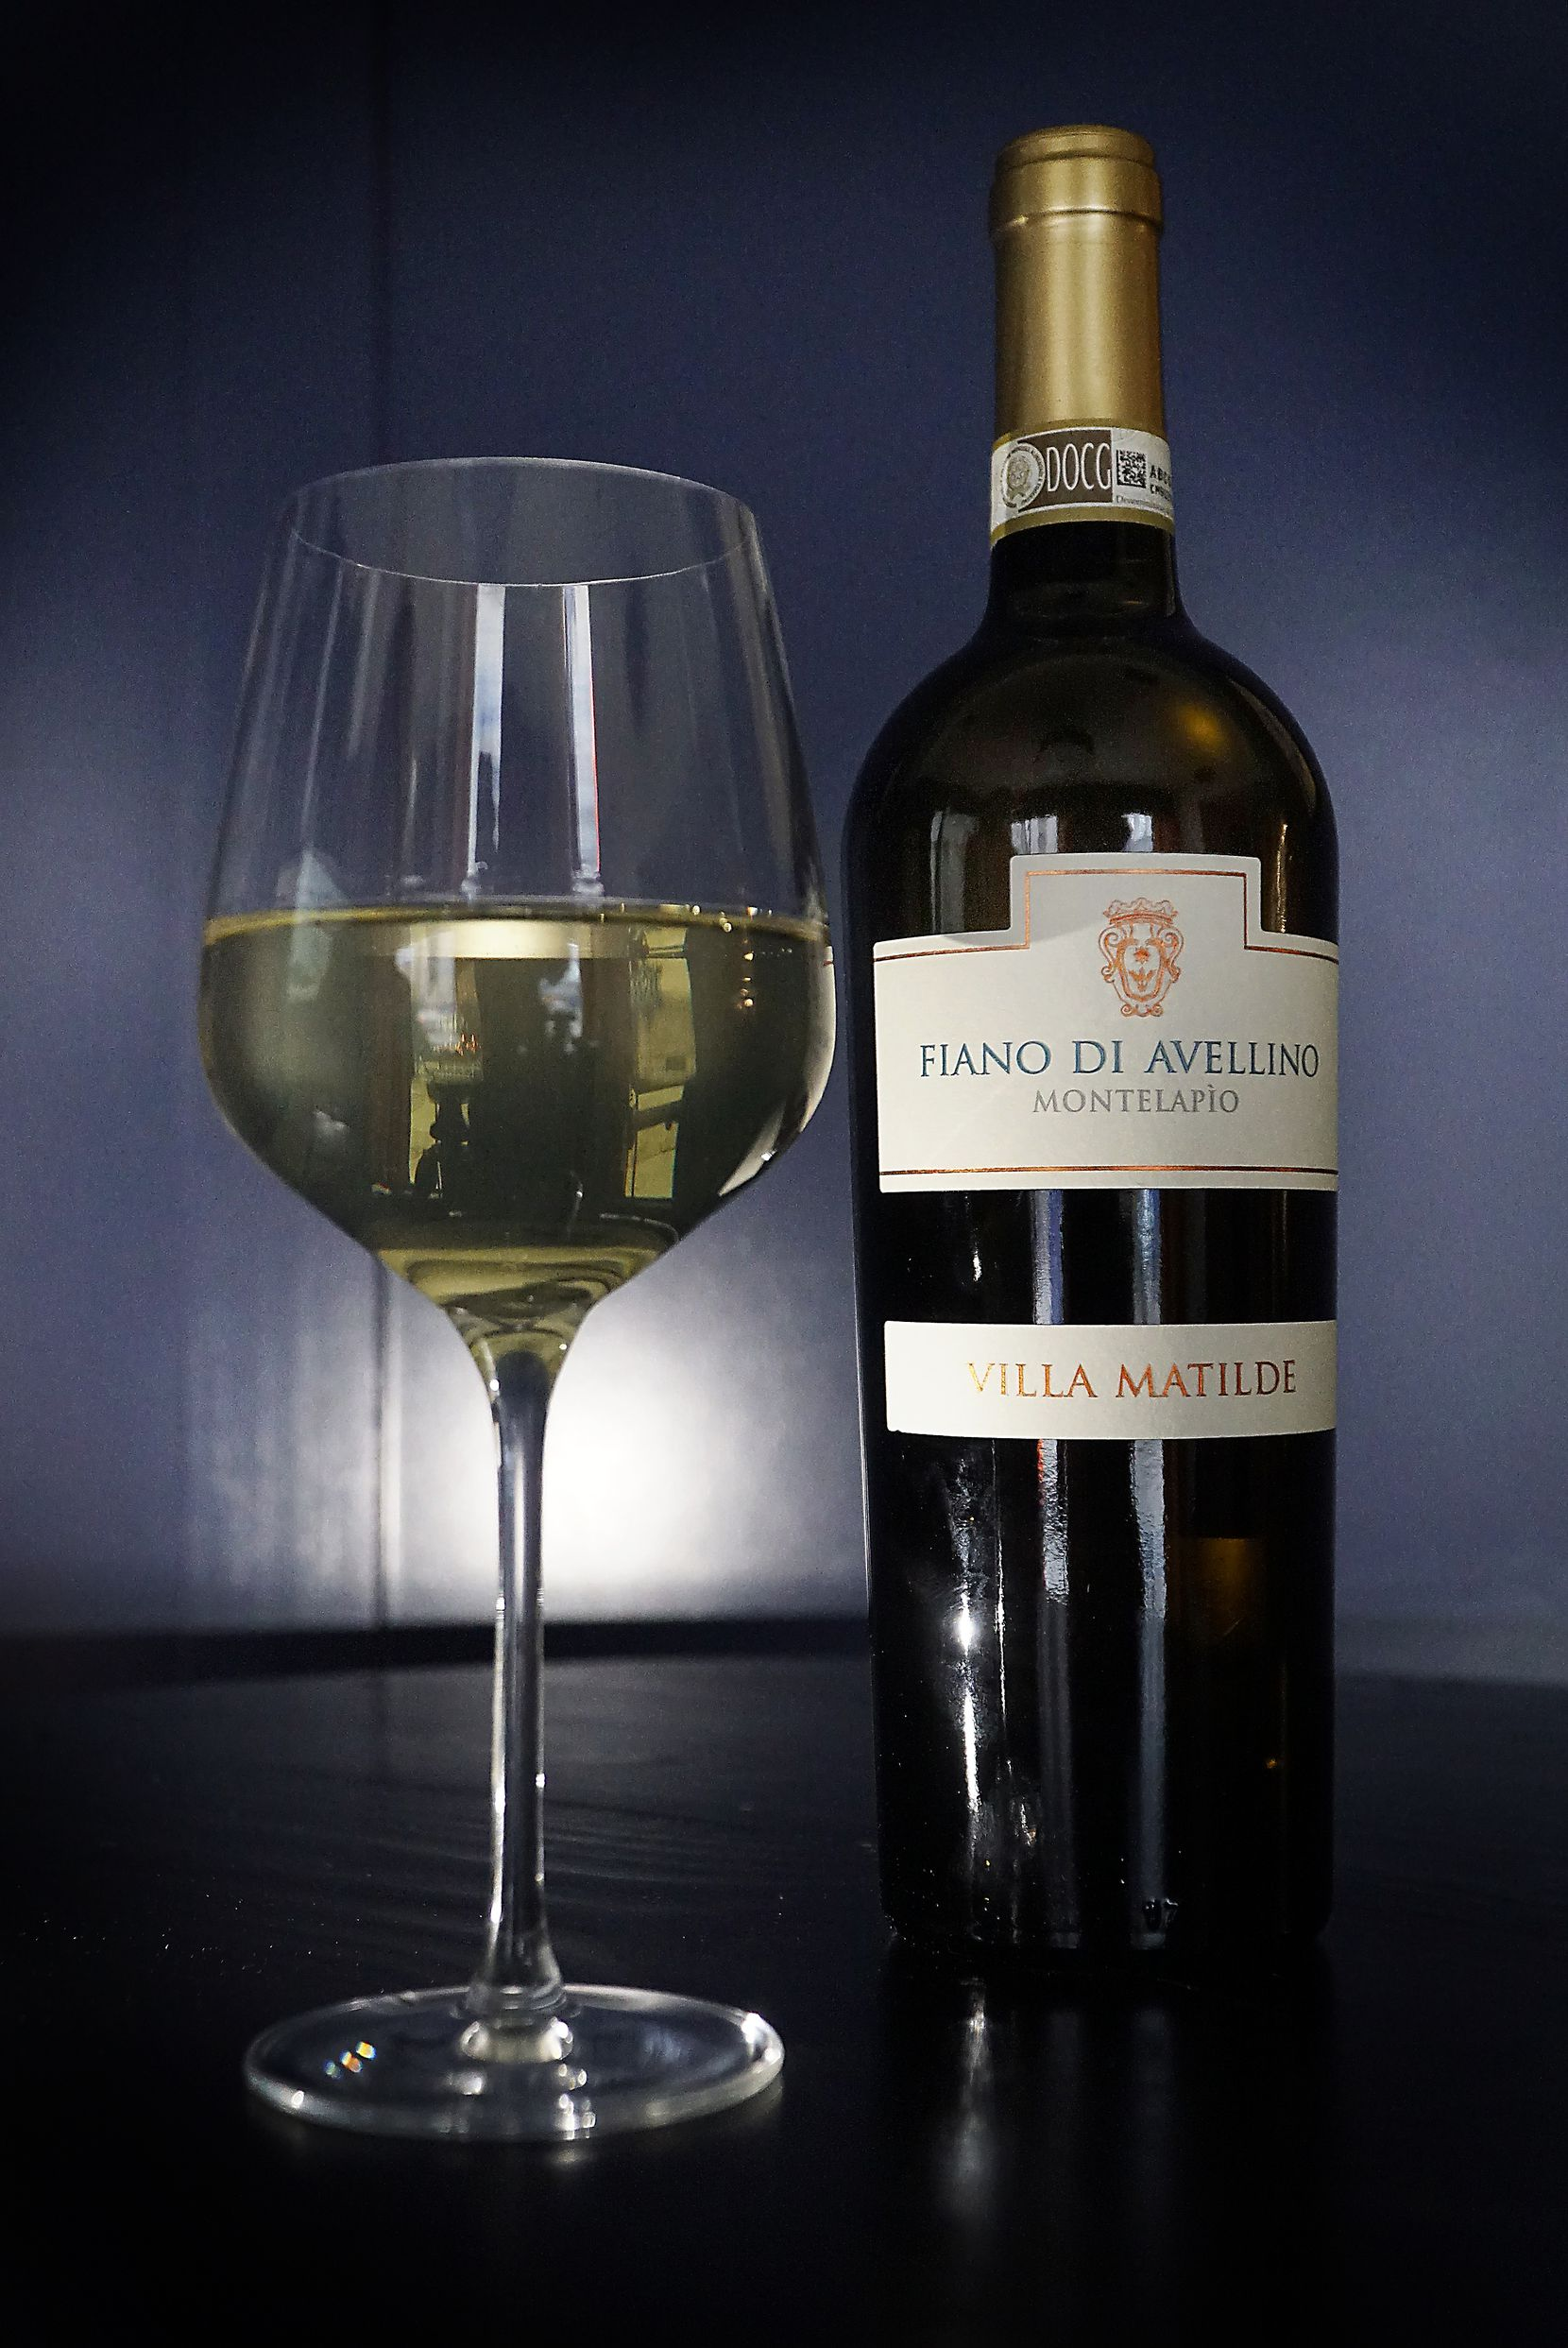 Villa Matilde Fiano di Avellino is a white wine that red wine drinkers will love.